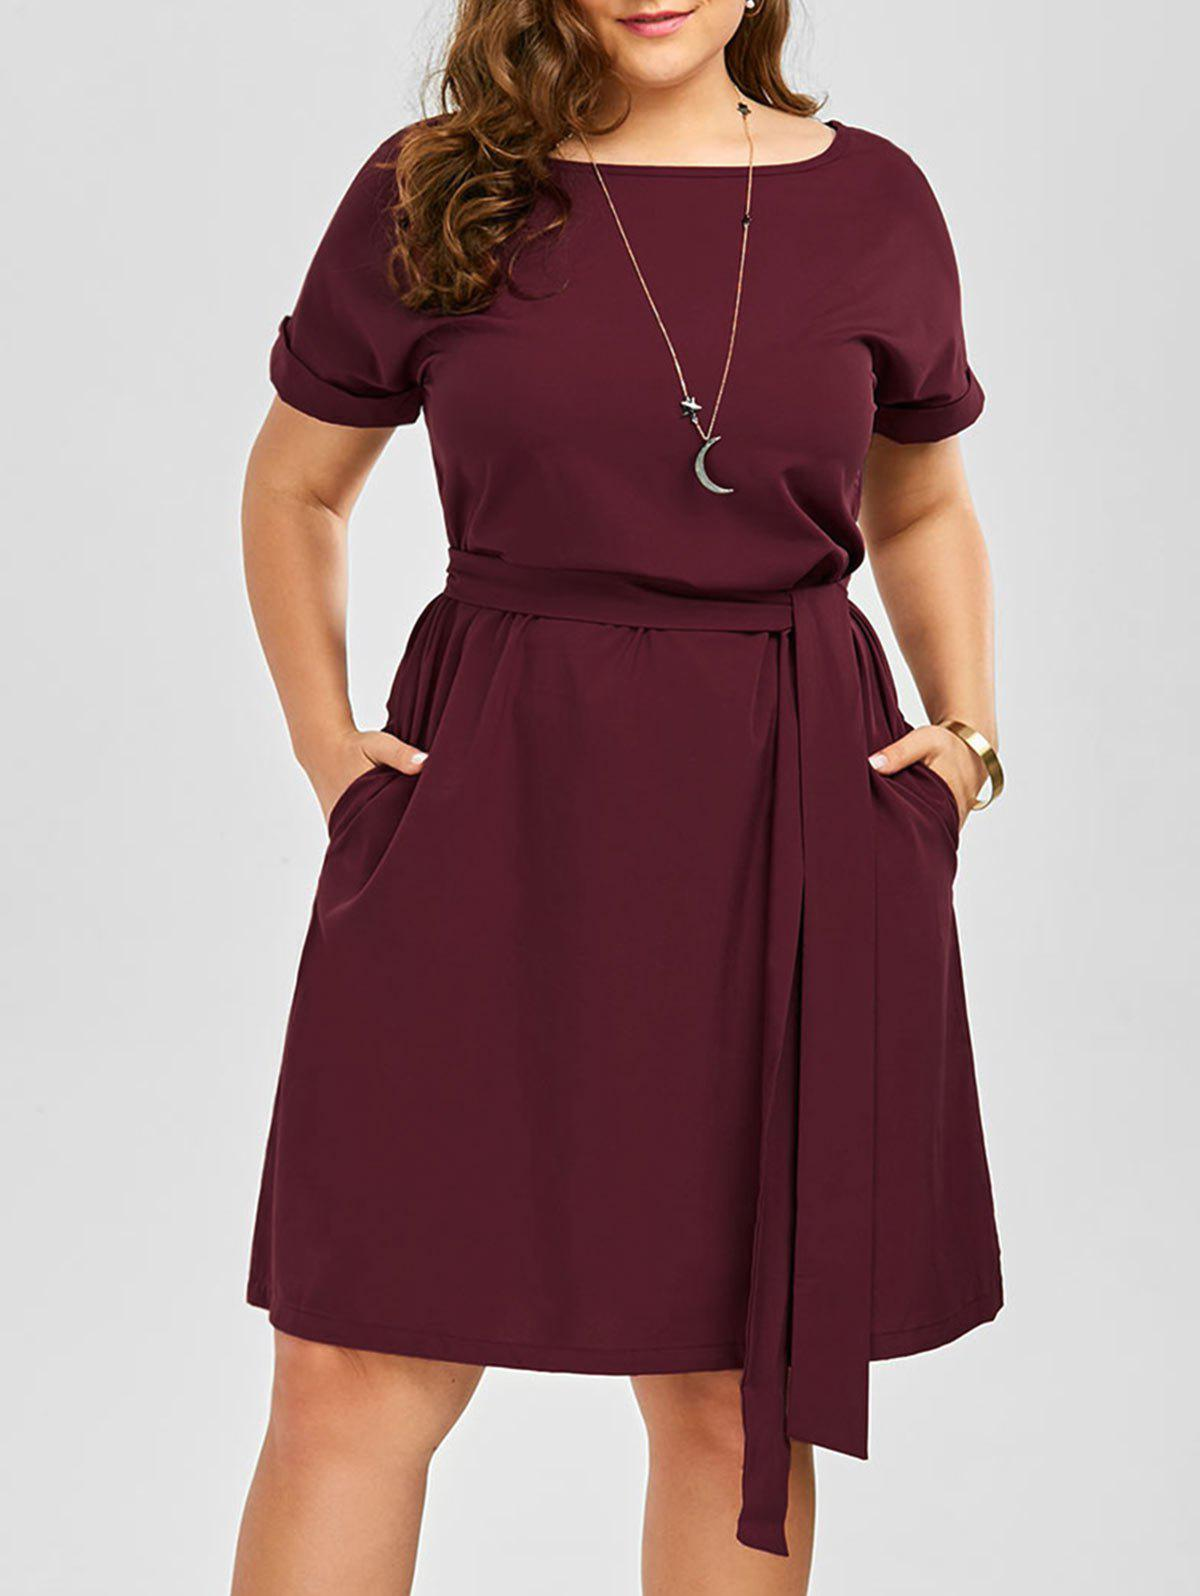 ed0bc306332 37% OFF  Plus Size Belted Knee Length A Line Dress With Pocket